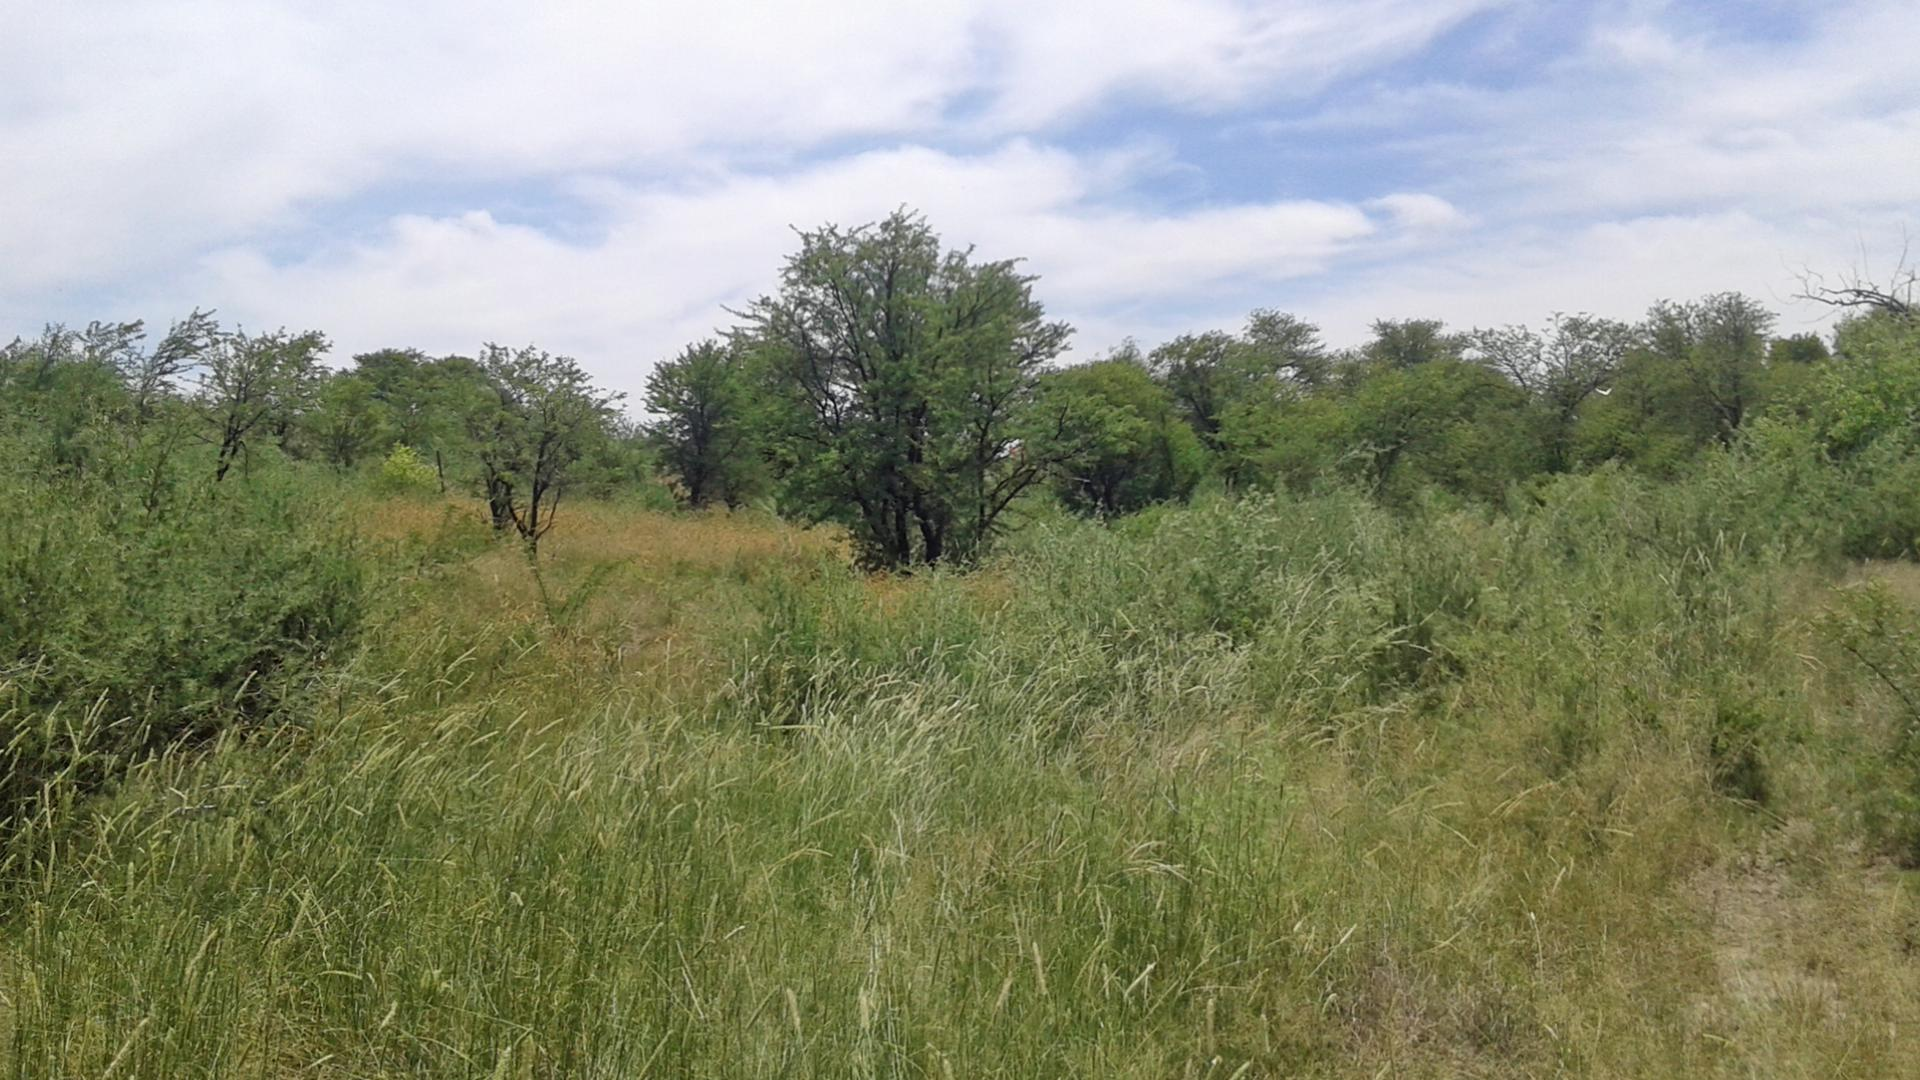 Land for sale for sale in koppies private sale for States with free land